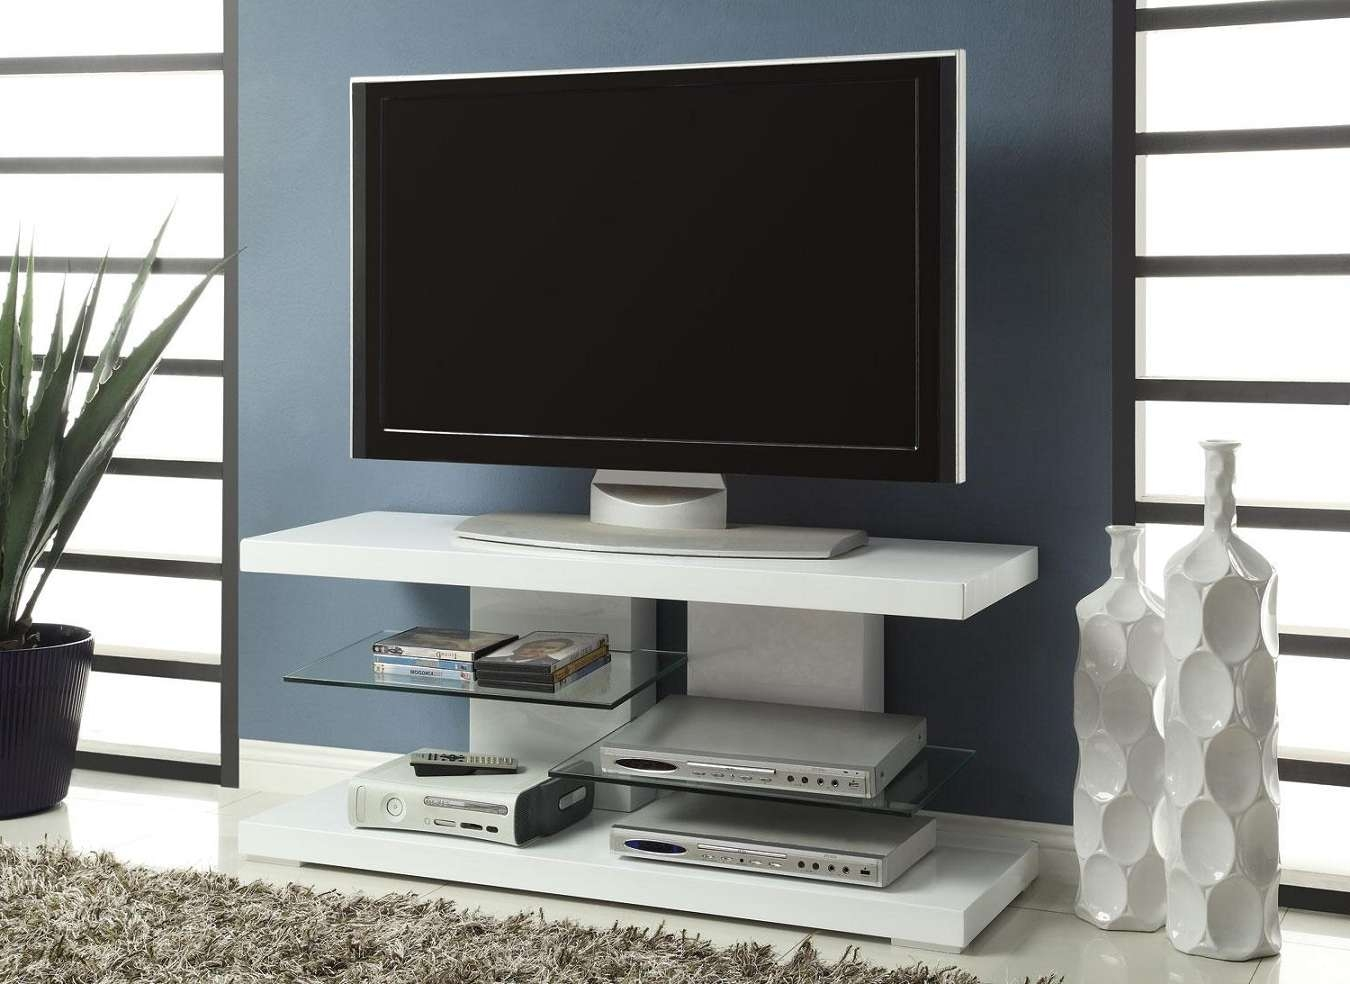 Black Painted Oak Wood Wide Screen Tv Stand Mixed Light Blue Wall Pertaining To Wide Screen Tv Stands (View 4 of 15)